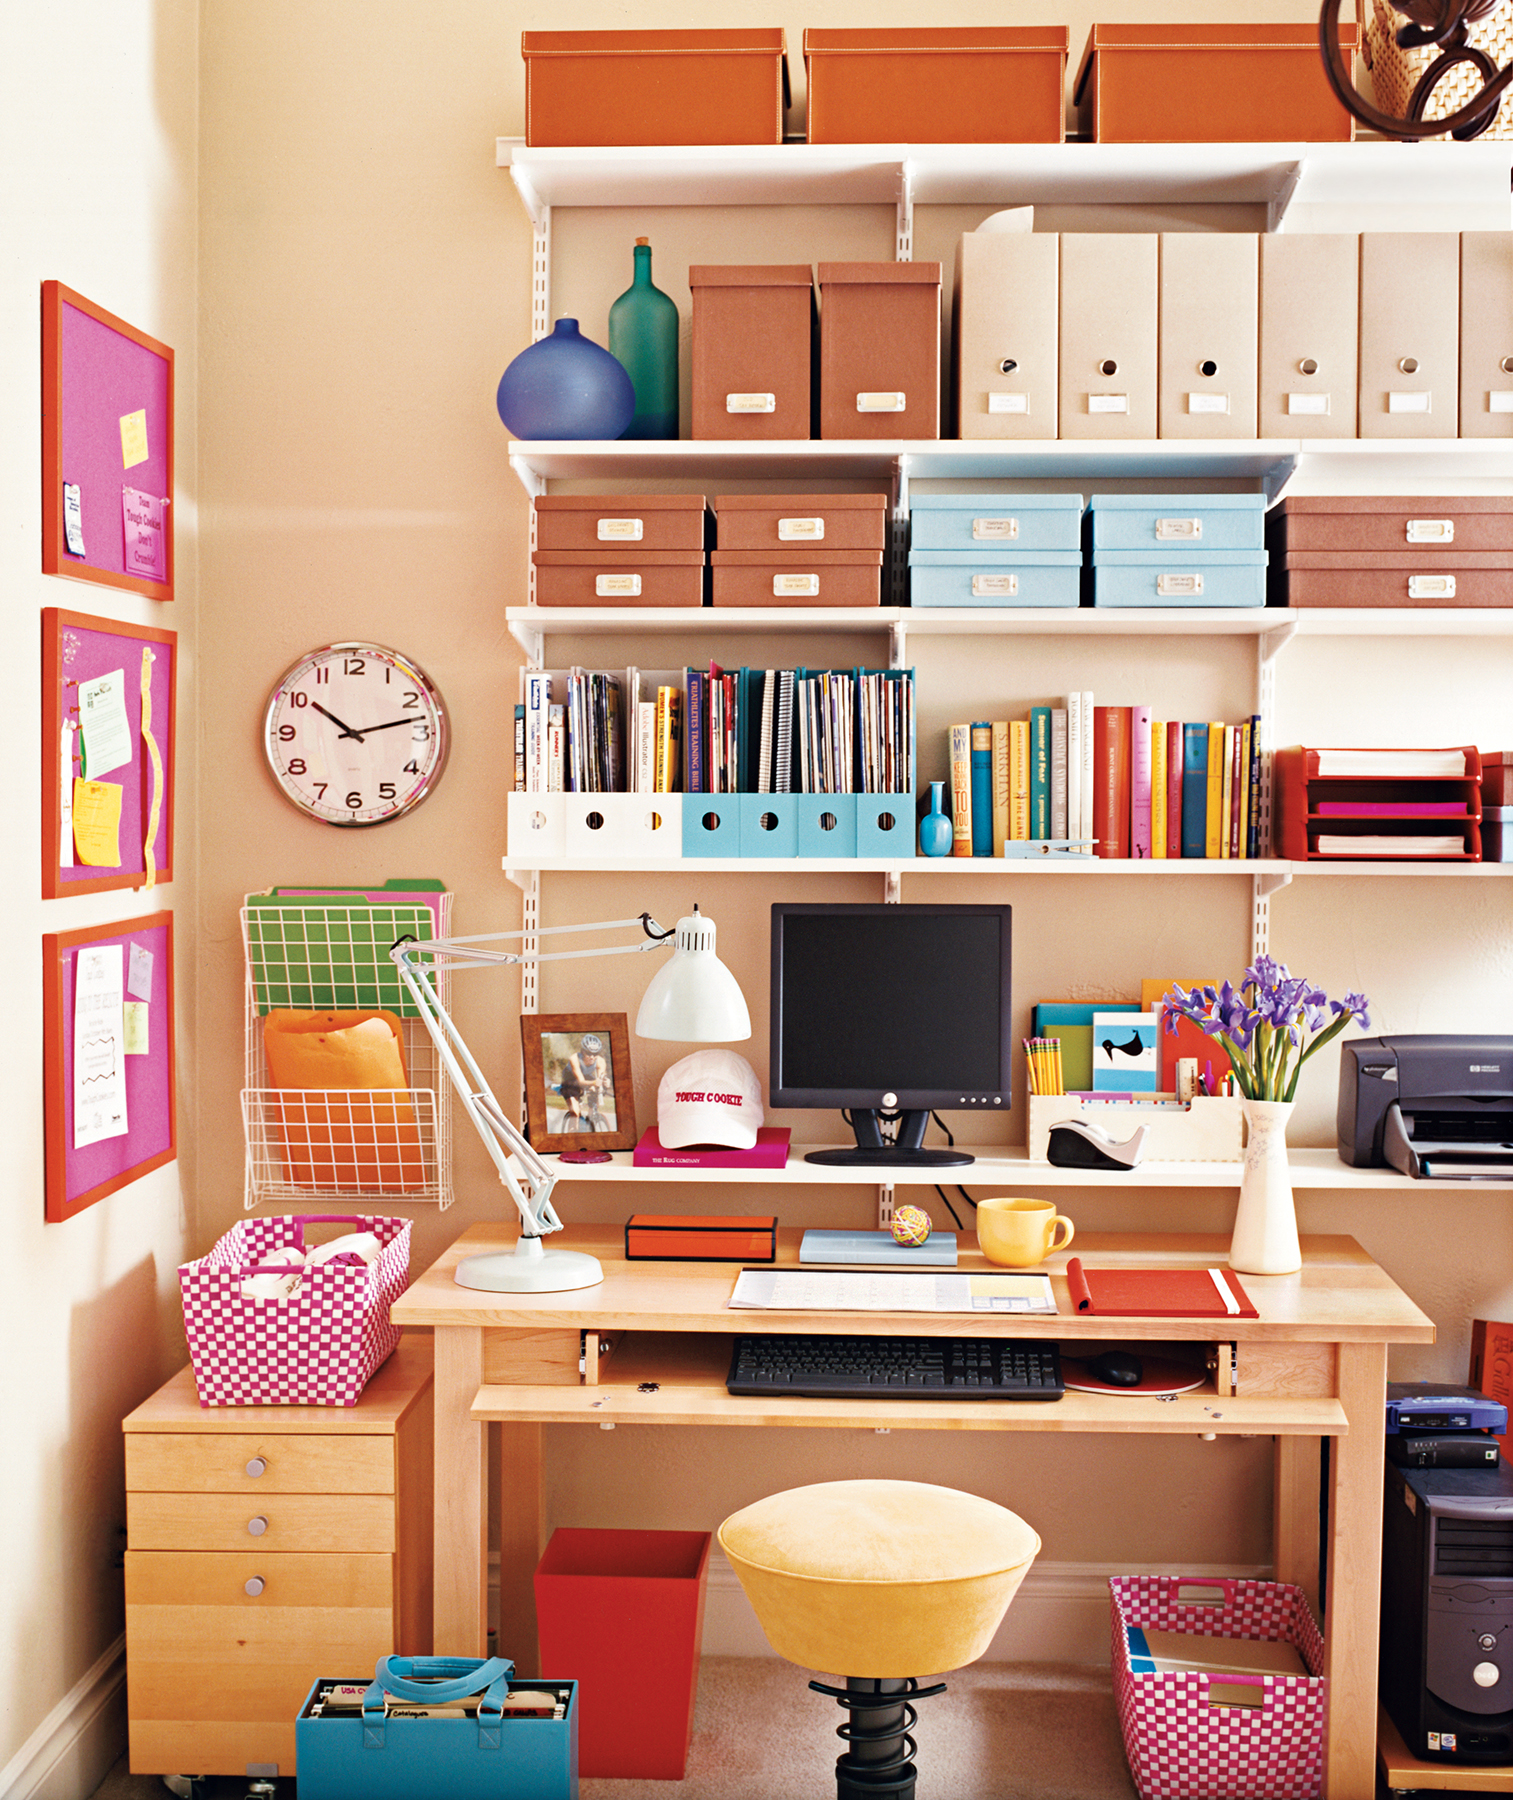 Home Office Design Tips To Stay Healthy: How To Beat Clutter In The Home Office?